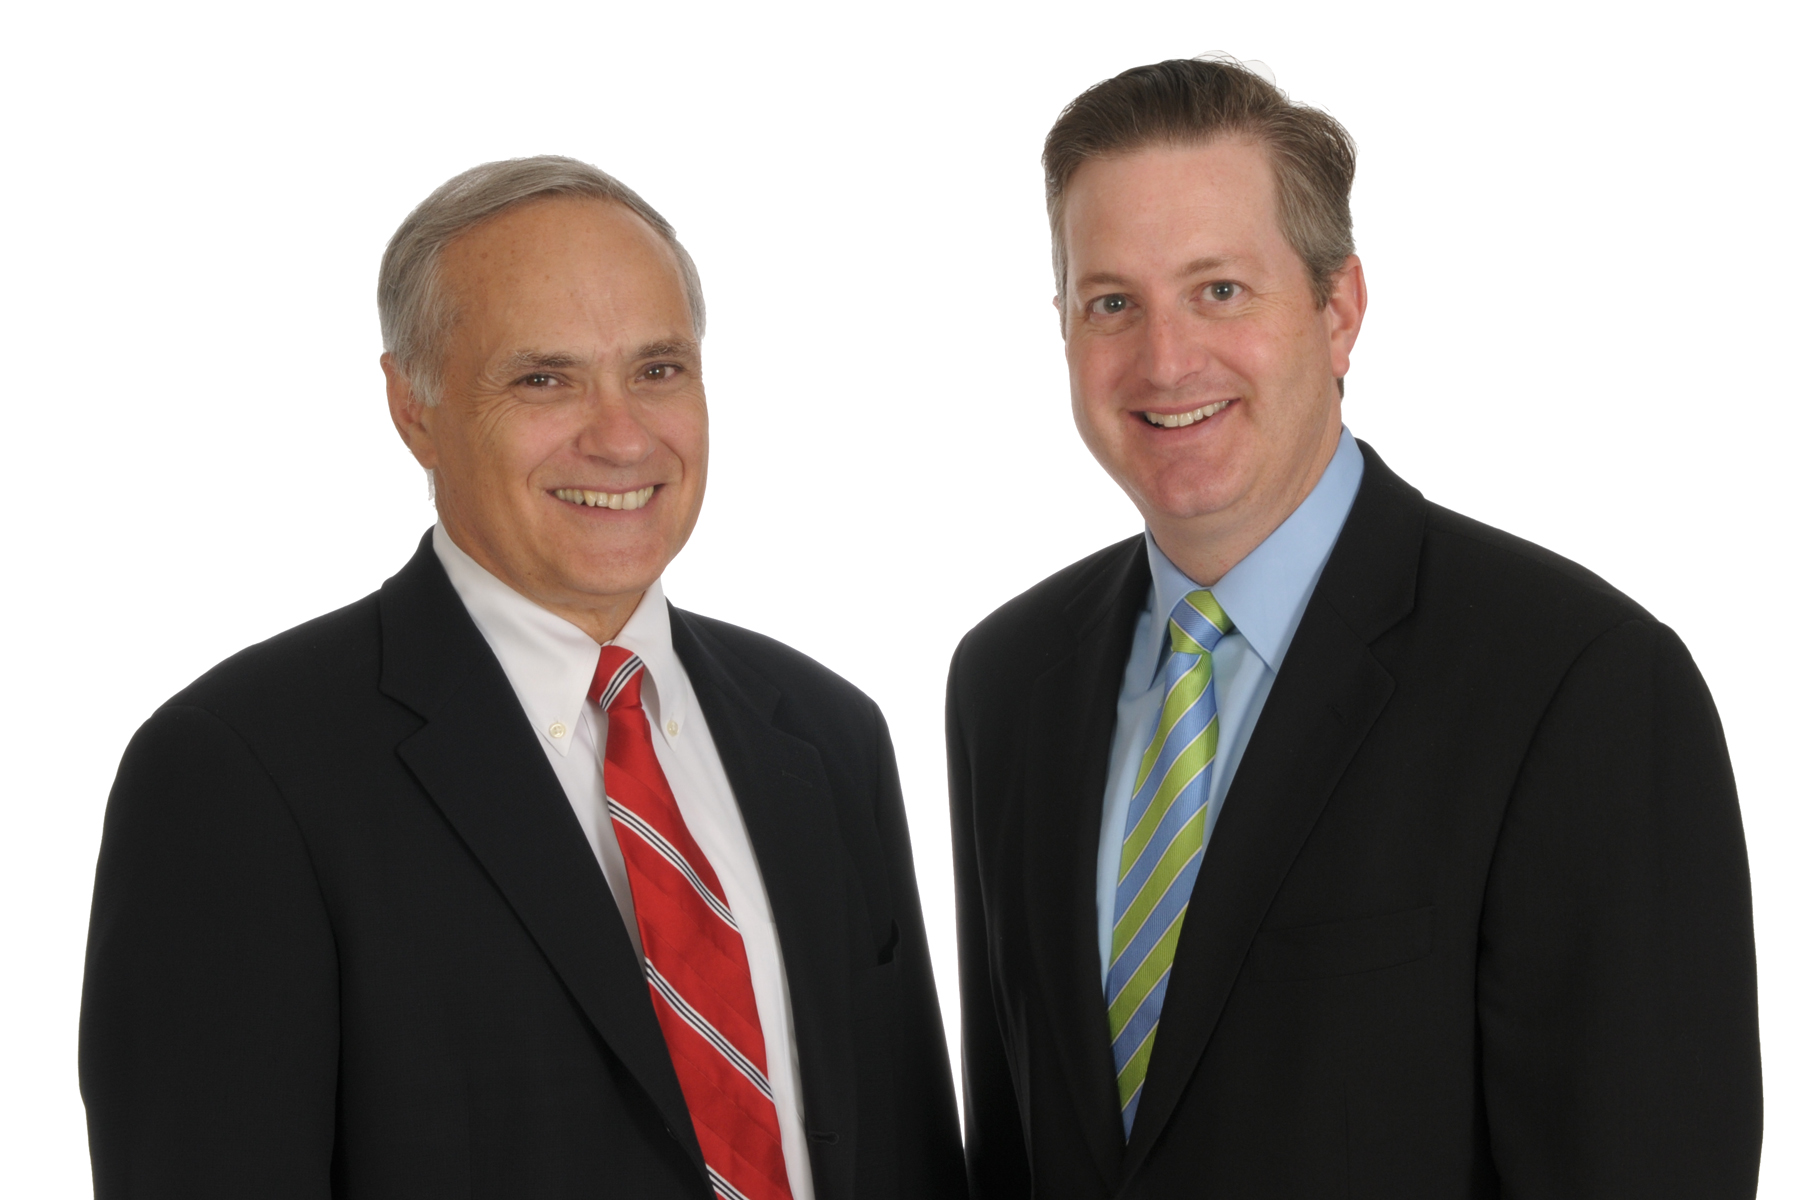 Former CMO Tom Biancaniello (left) with new CMO Todd Griffin